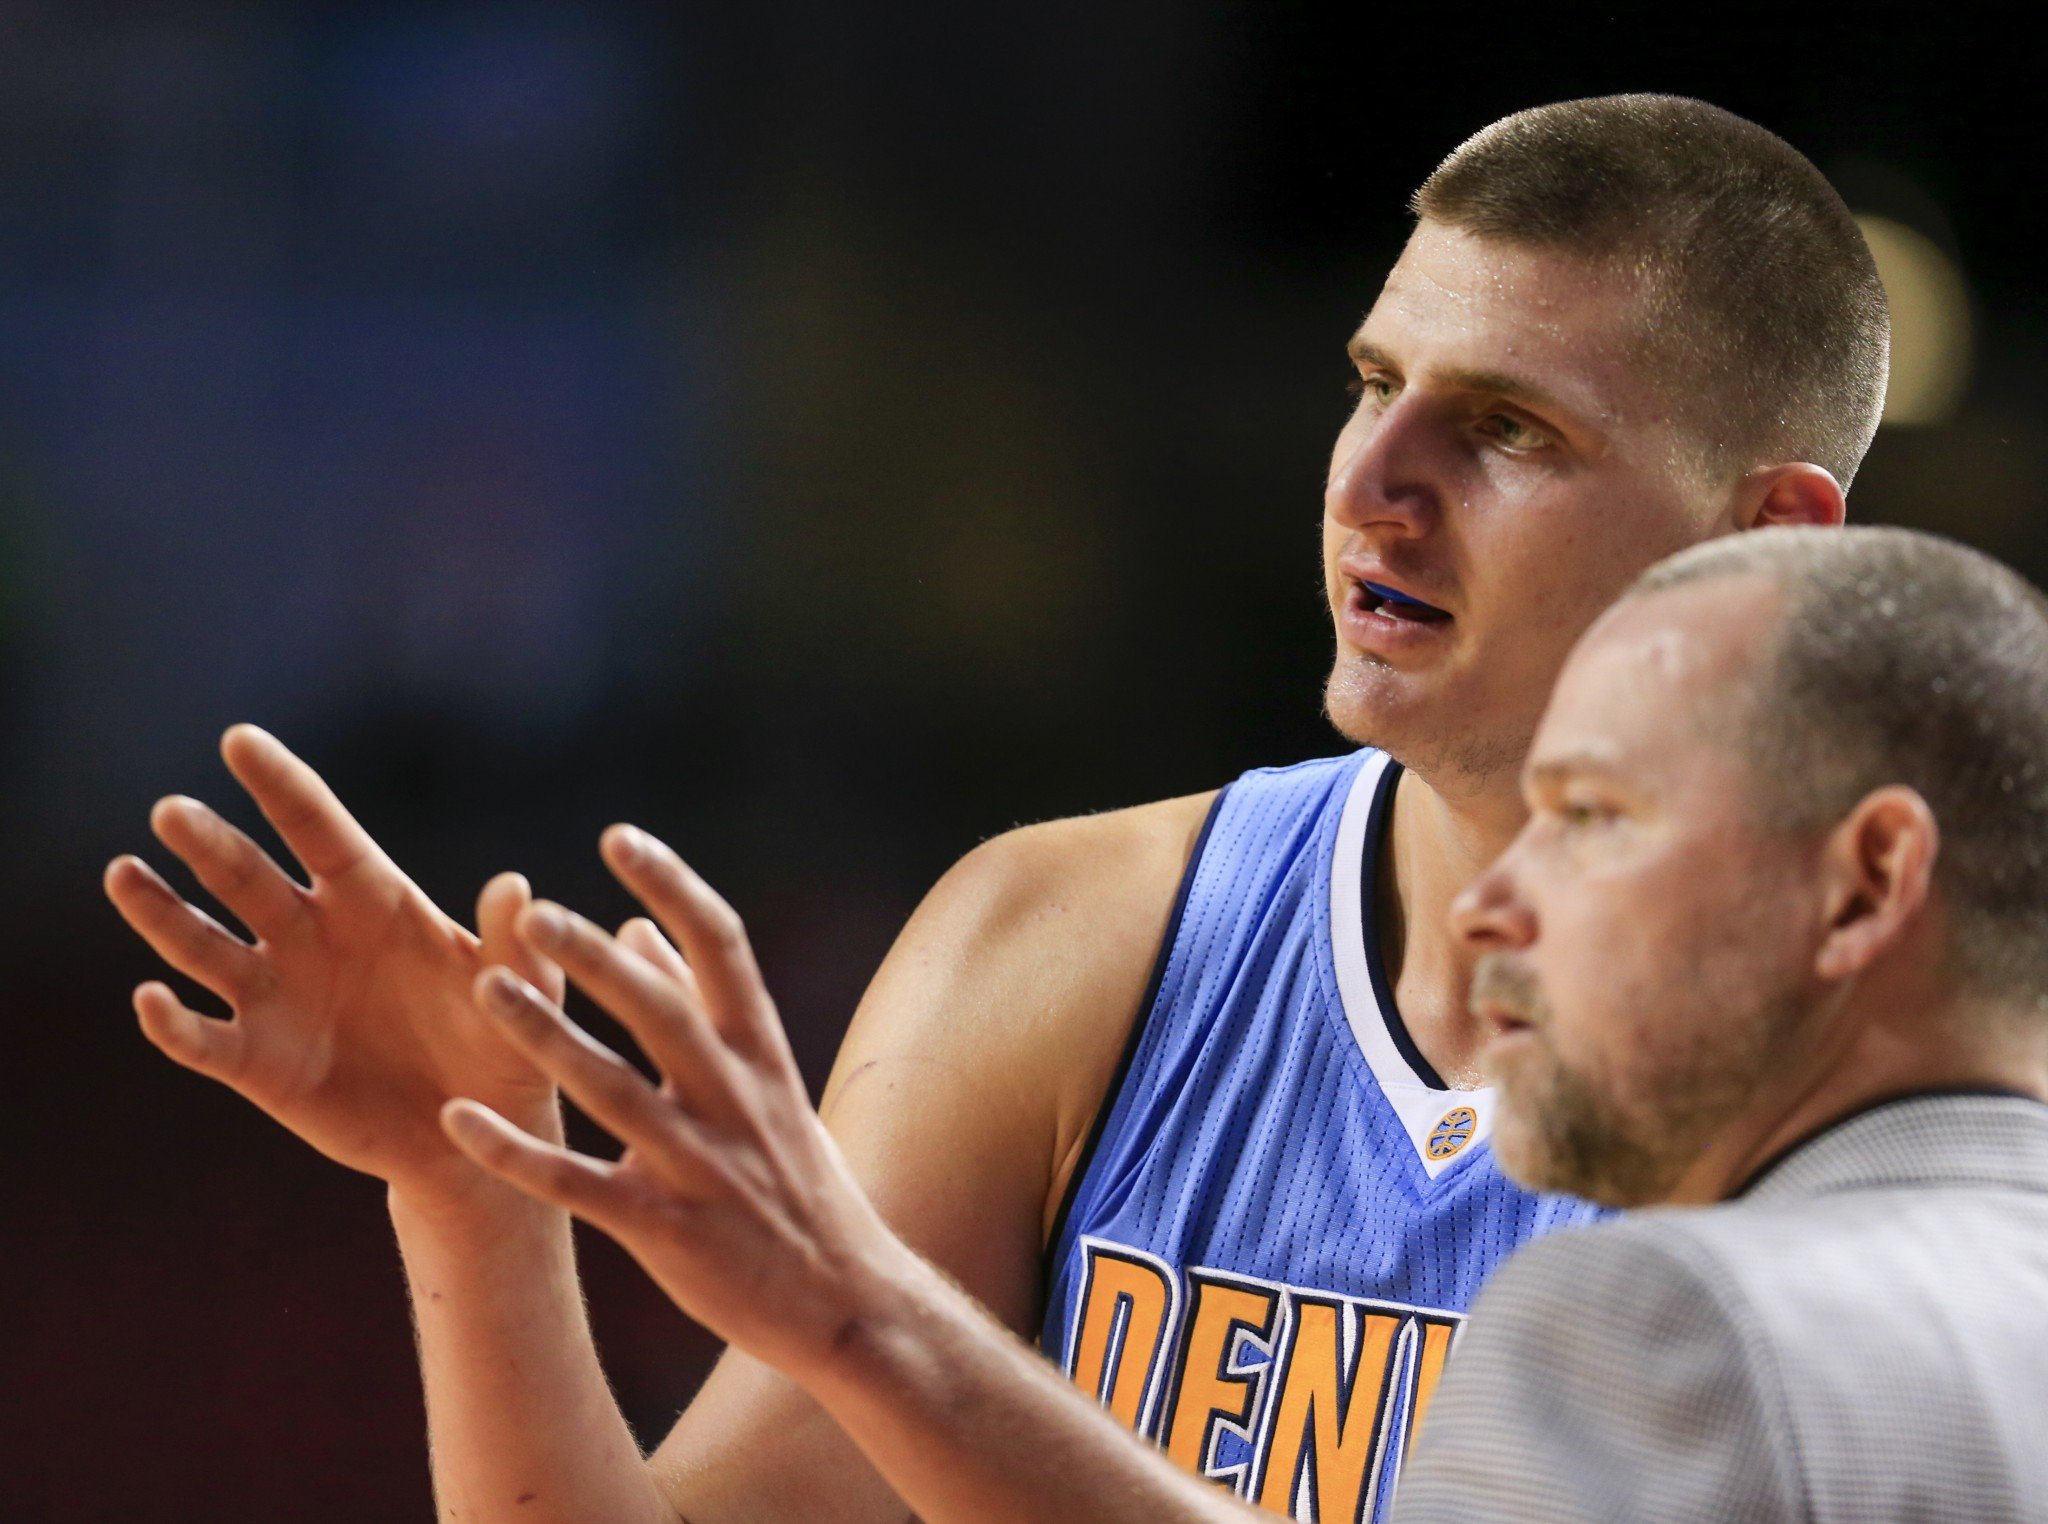 Nikola Jokic describes how he sees the celebration going. Mike Malone is not so sure. (AP)